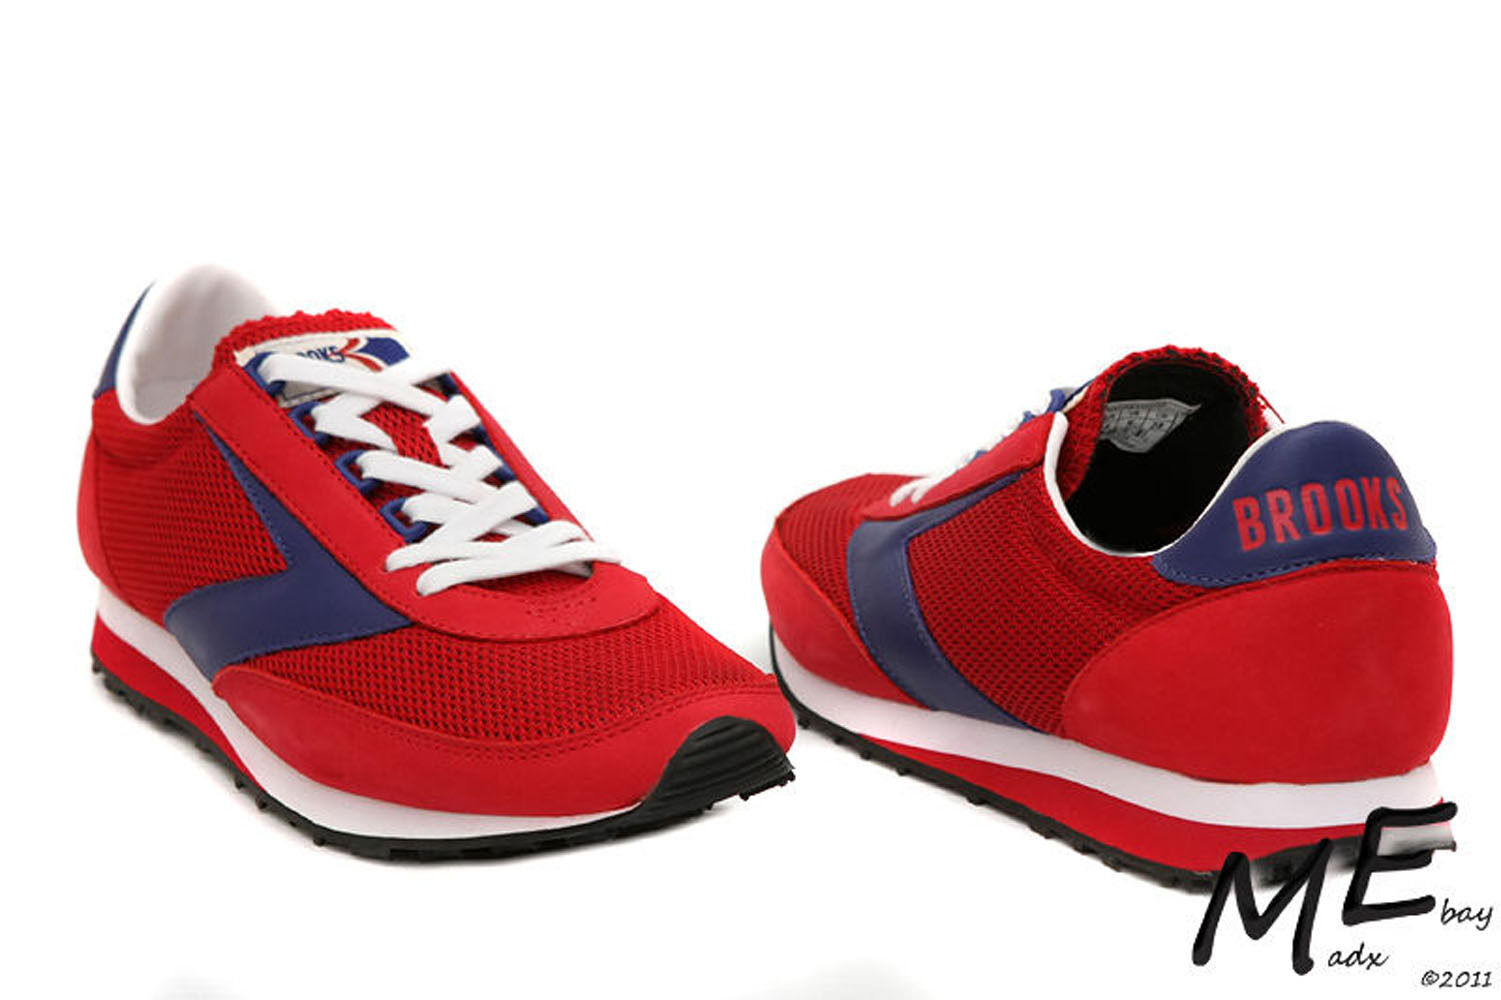 New Brooks Vantage Heritage Collection rouge Chaussures running hommes Chaussures rouge sz 10.5 59716c